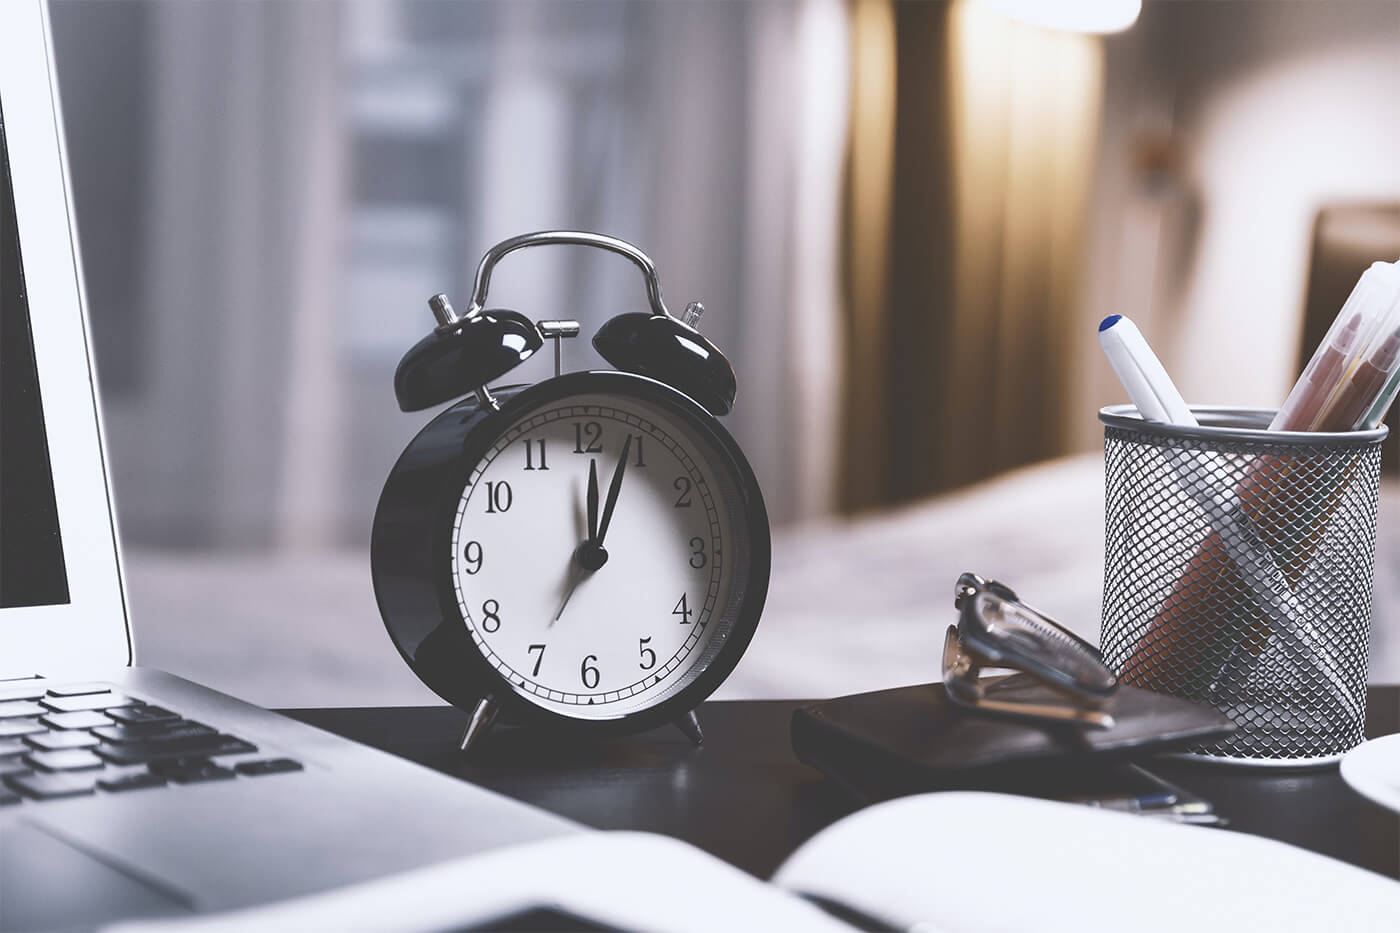 How can I maximize my time?